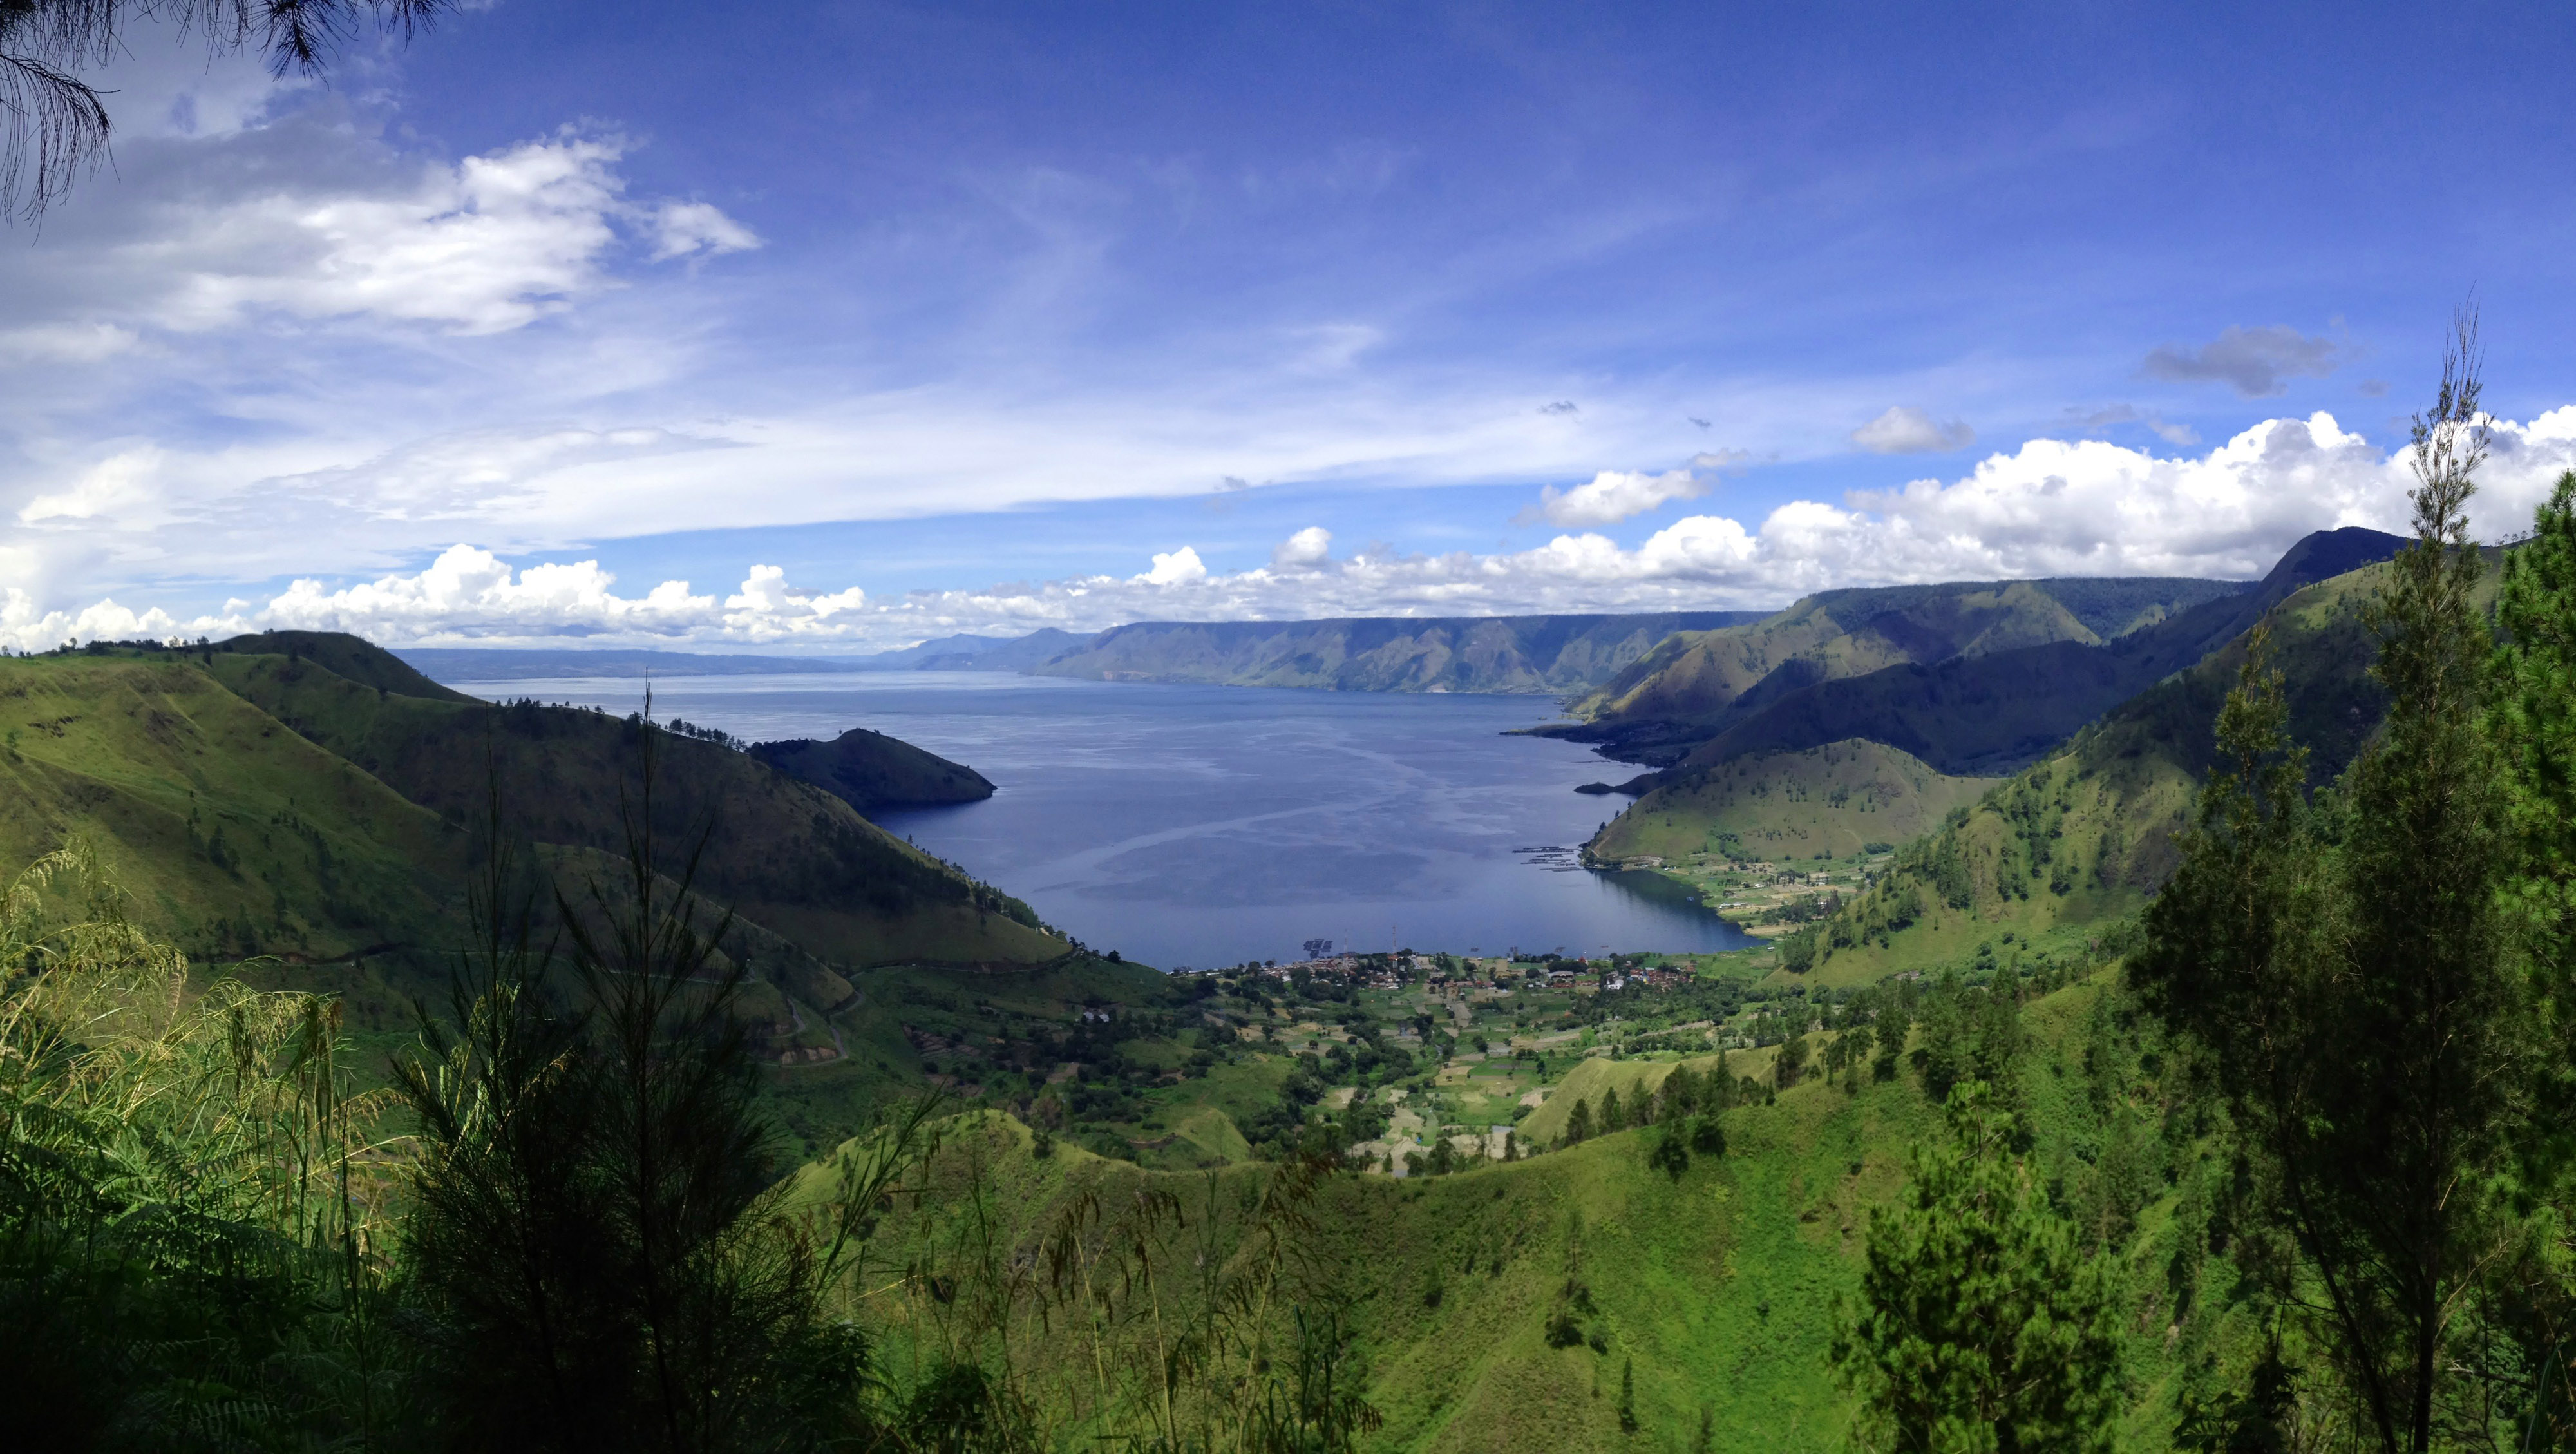 Lake Toba, Indonesia - Dio Nando Hasibuan